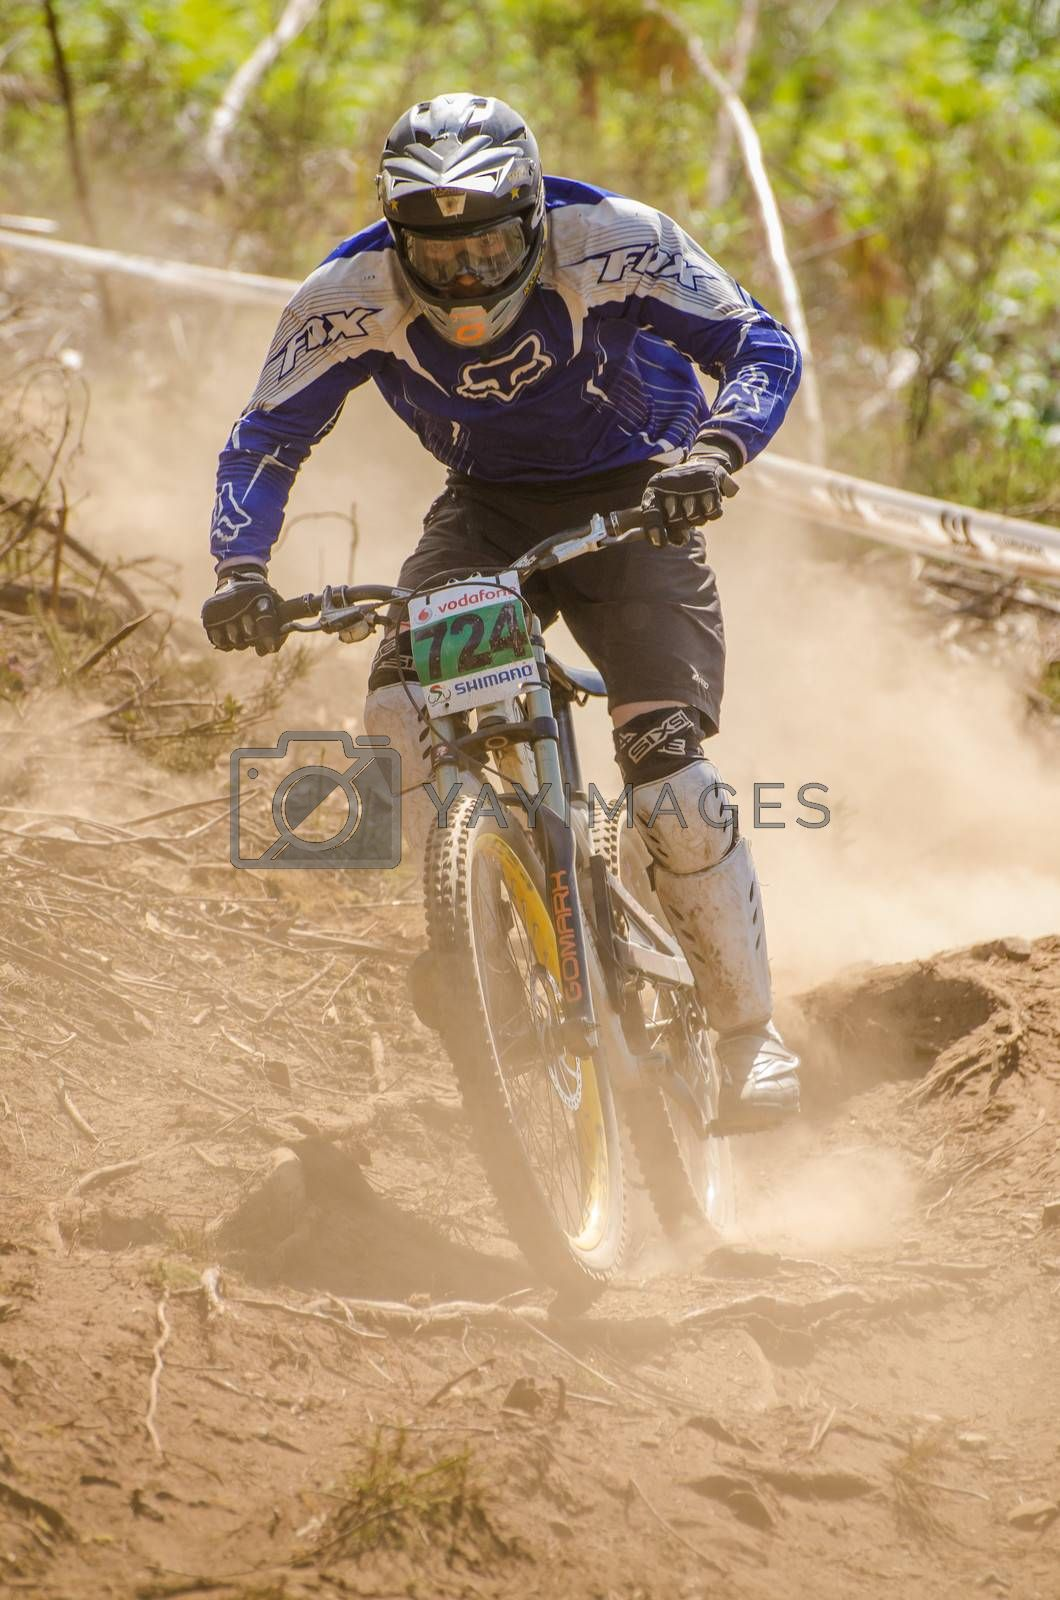 GOIS, PORTUGAL - JUNE 23: Fabio Garcia during the 4th Stage of the Taca de Portugal Downhill Vodafone on june 23, 2013 in Gois, Portugal.